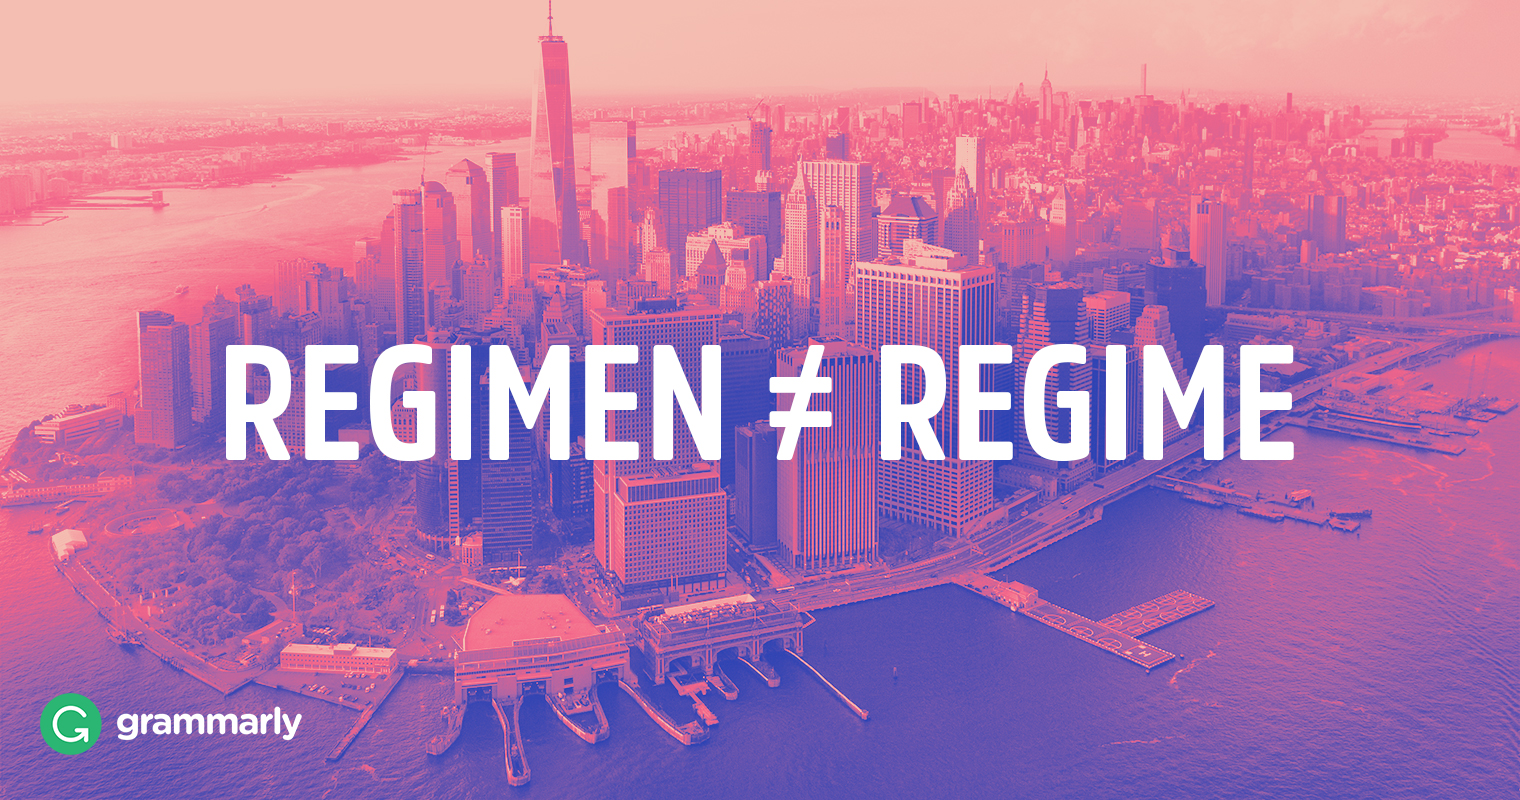 Regimen: Is It Synonymous with Regime?